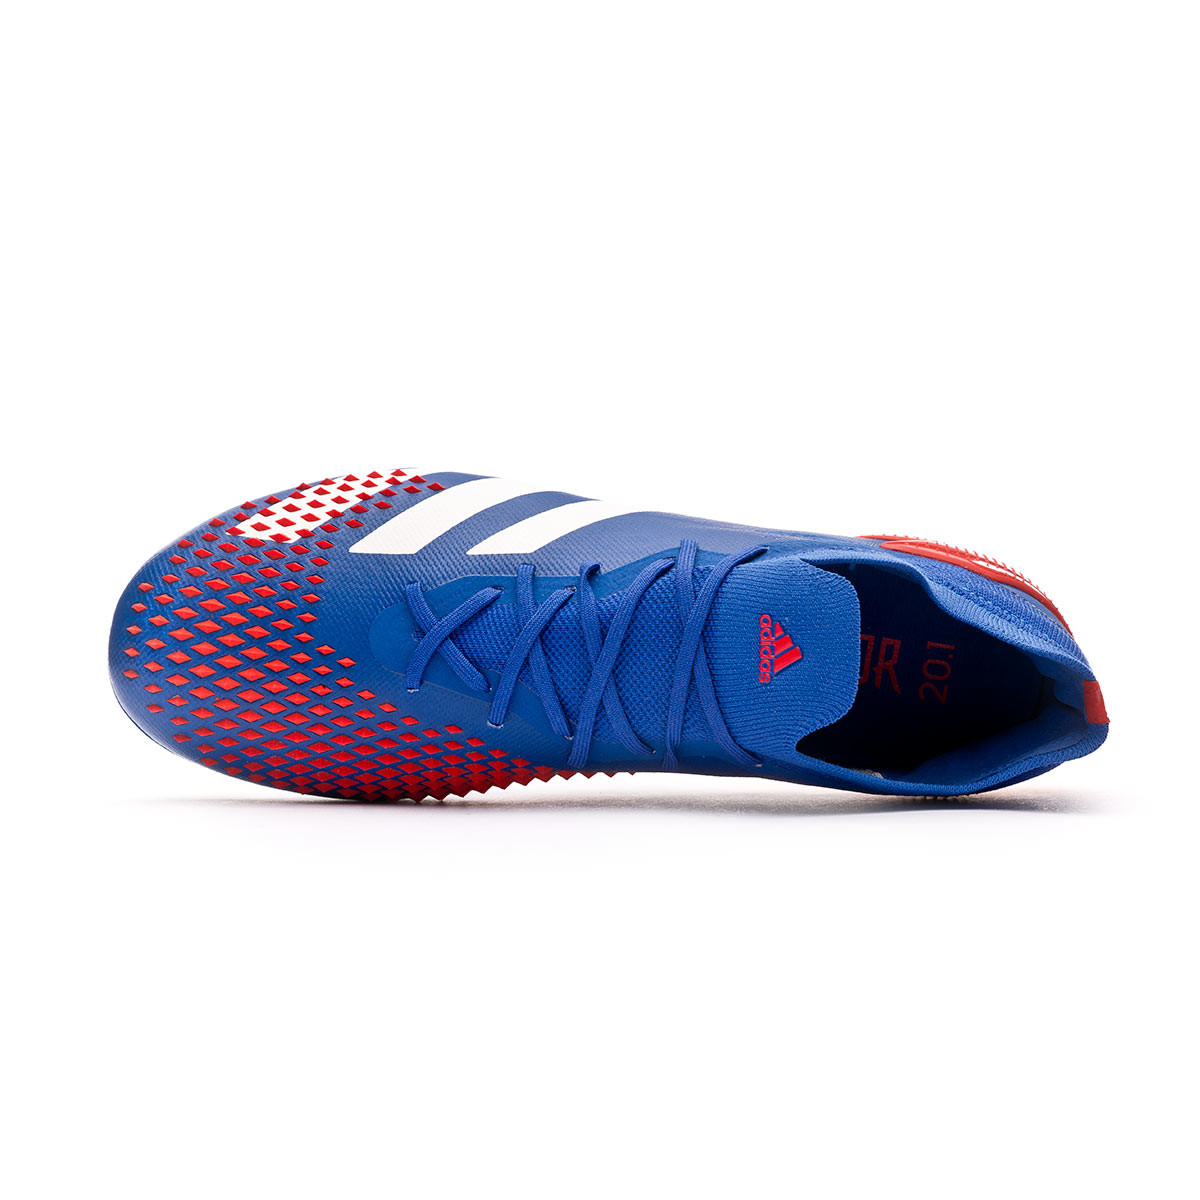 veneno Porque Hermano  Football Boots adidas Predator 20.1 Low FG Team royal blue-White-Active red  - Football store Fútbol Emotion